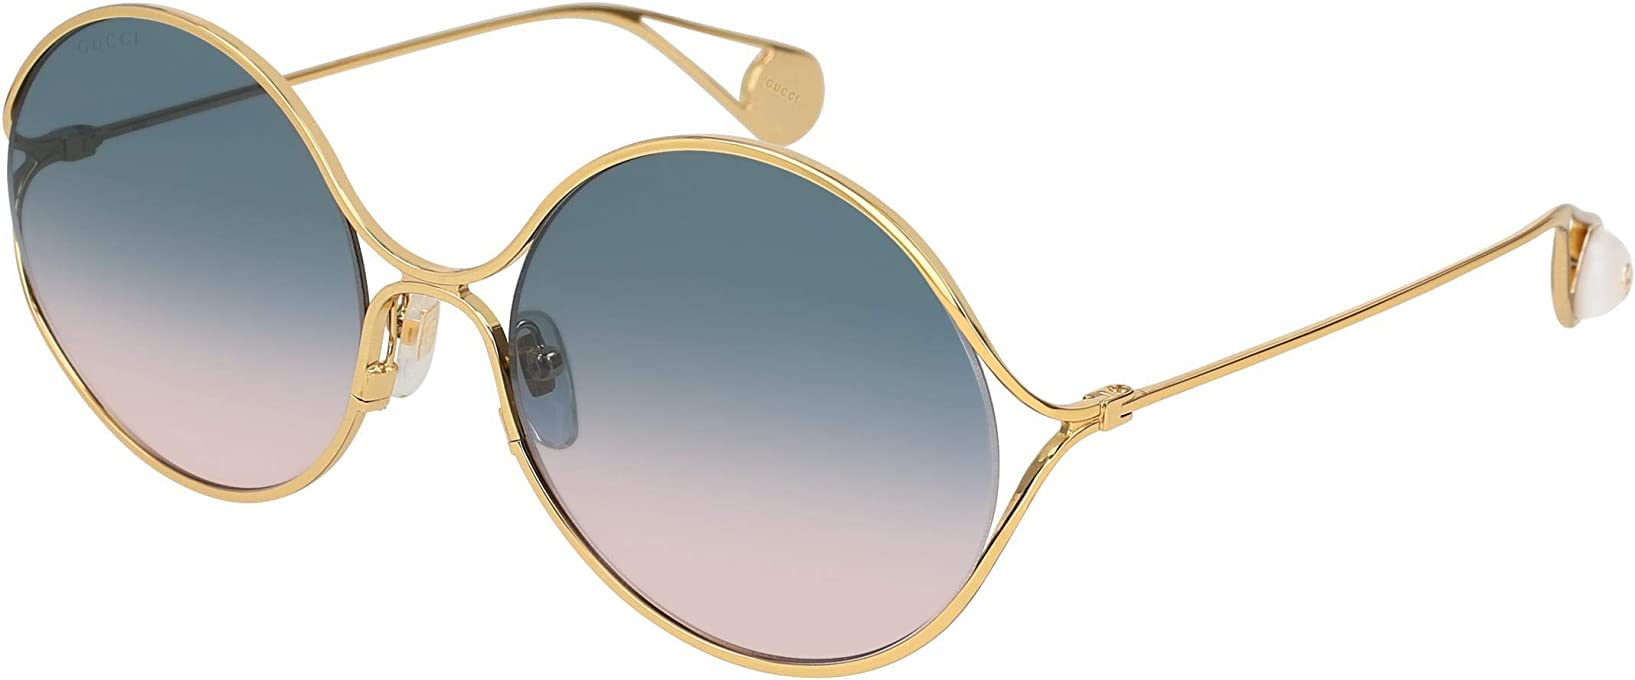 Gucci Women's GG0253S Round Sunglasses, Gold, 58 mm